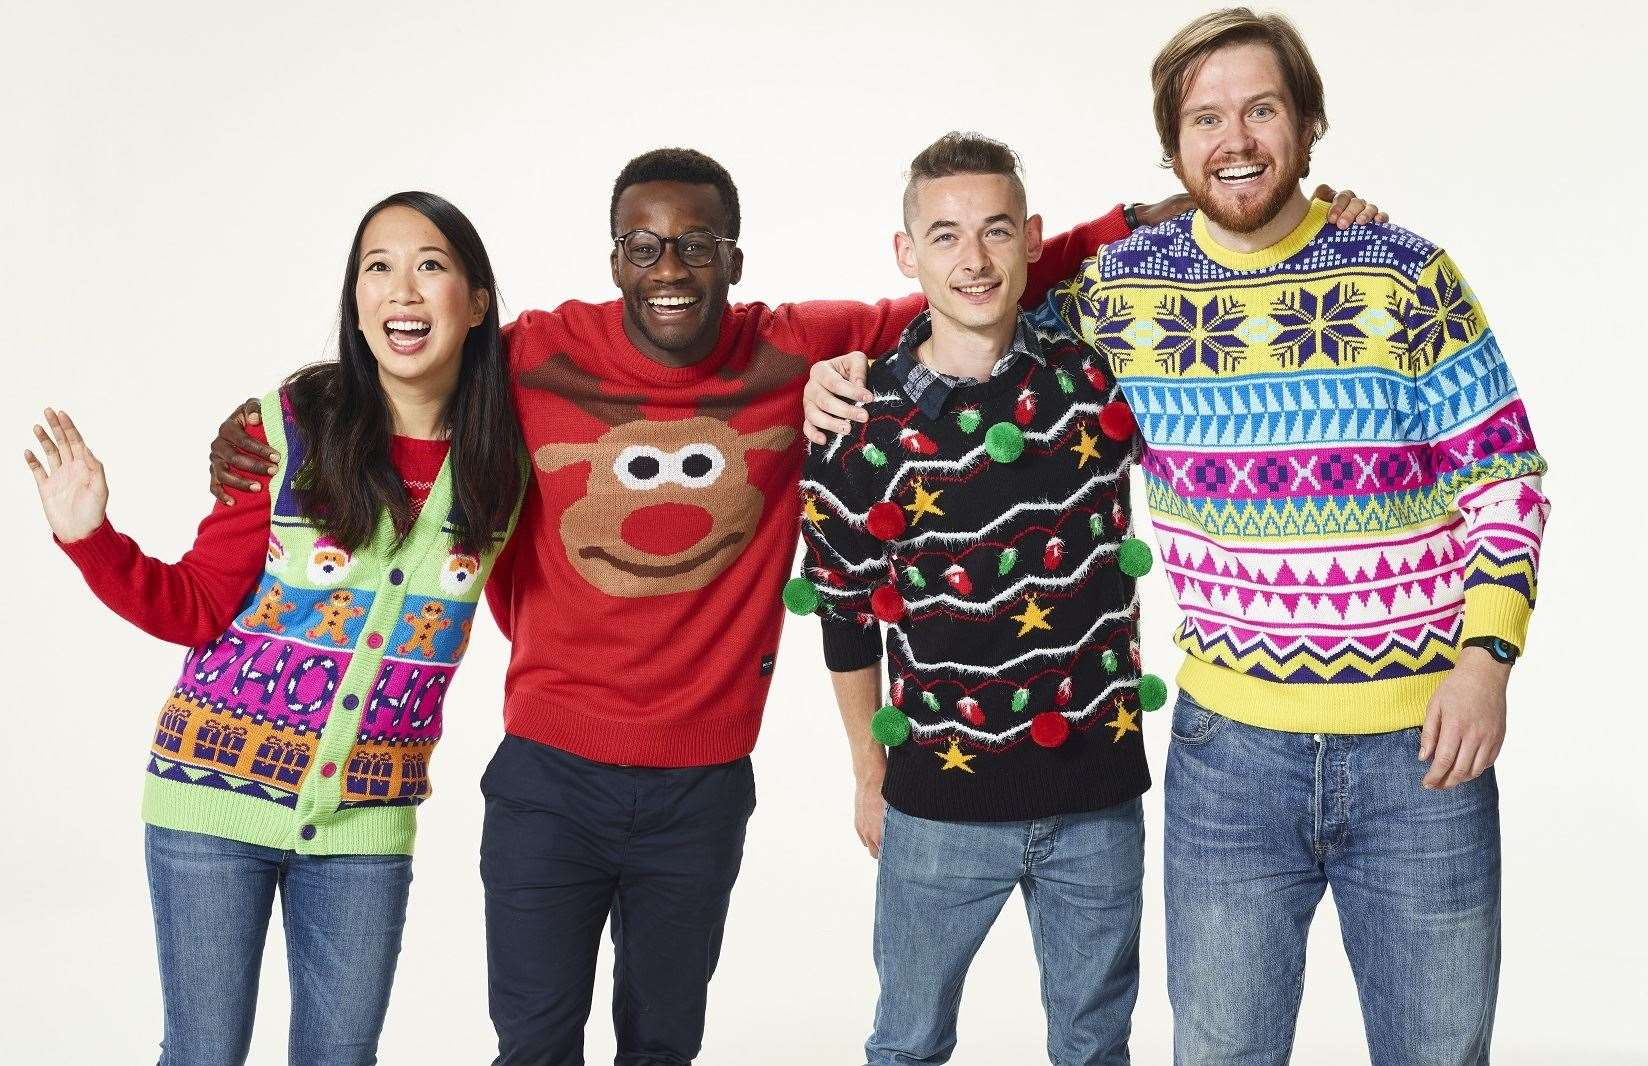 Christmas Jumper Day is taking place on Friday, December 13